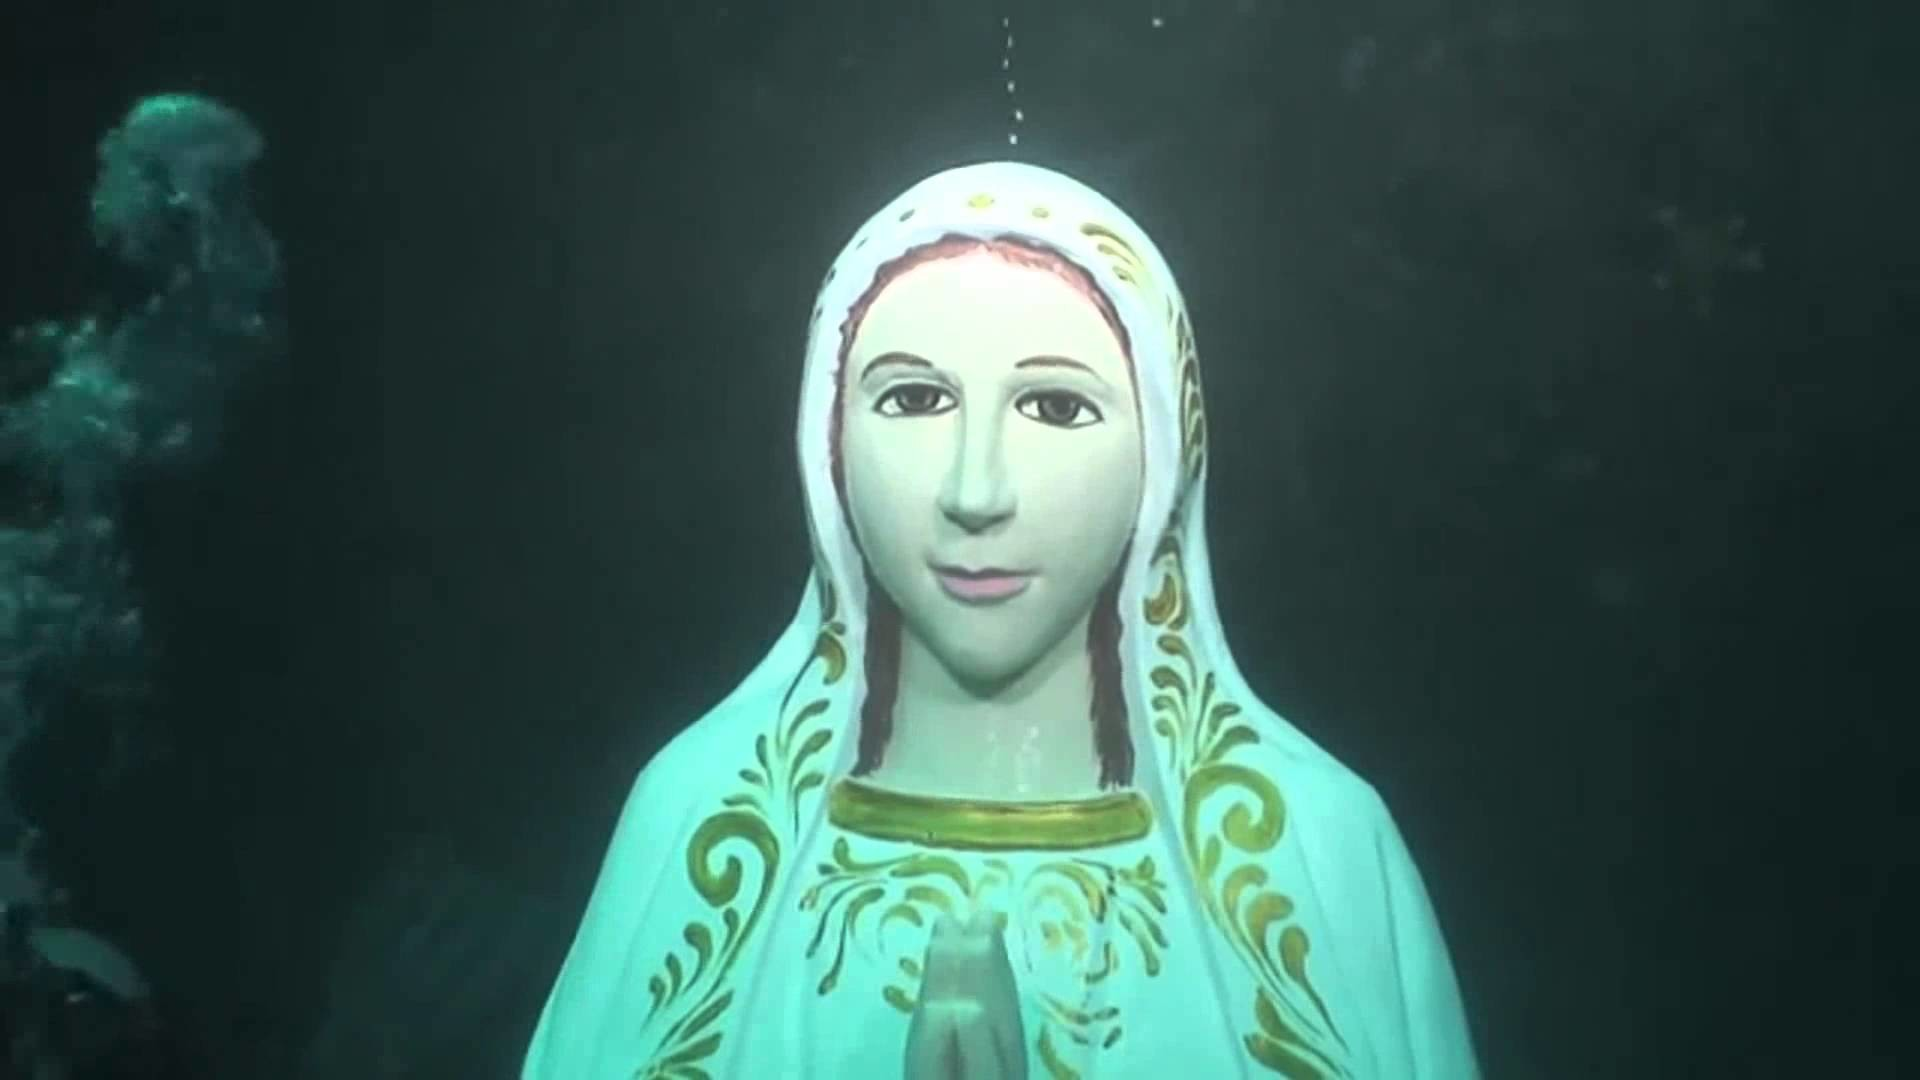 Wallpapers of Mother Mary 55 images 1920x1080